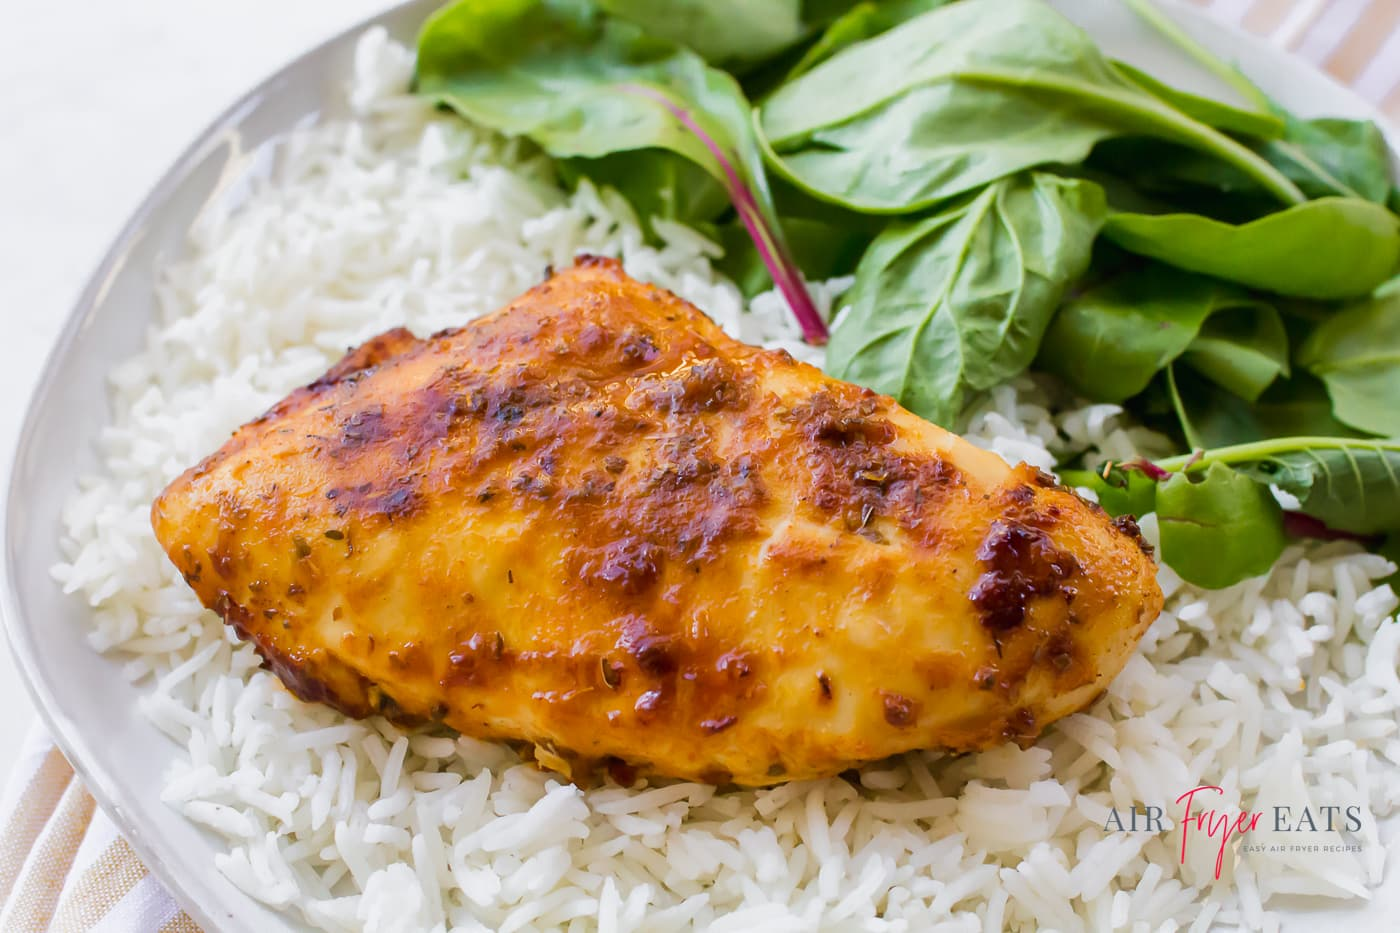 A browned skinless chicken breast on a bed of white rice with fresh greens